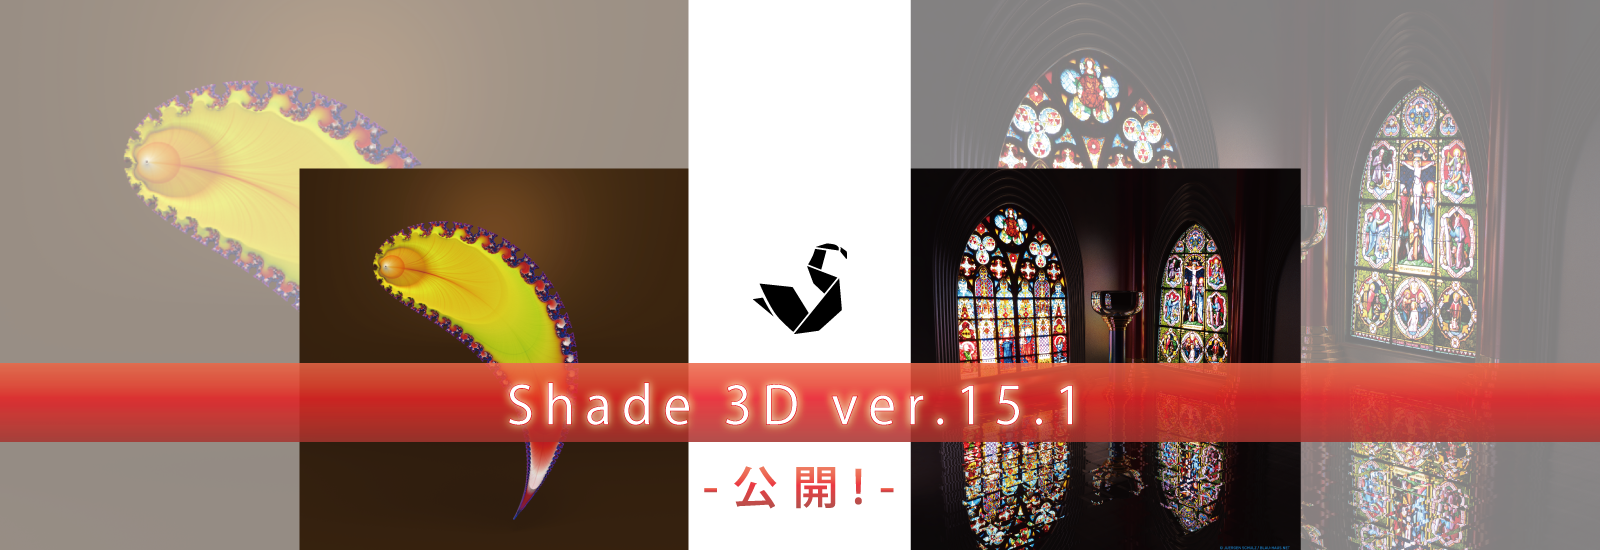 Shade 3D ver.15.1 arrived